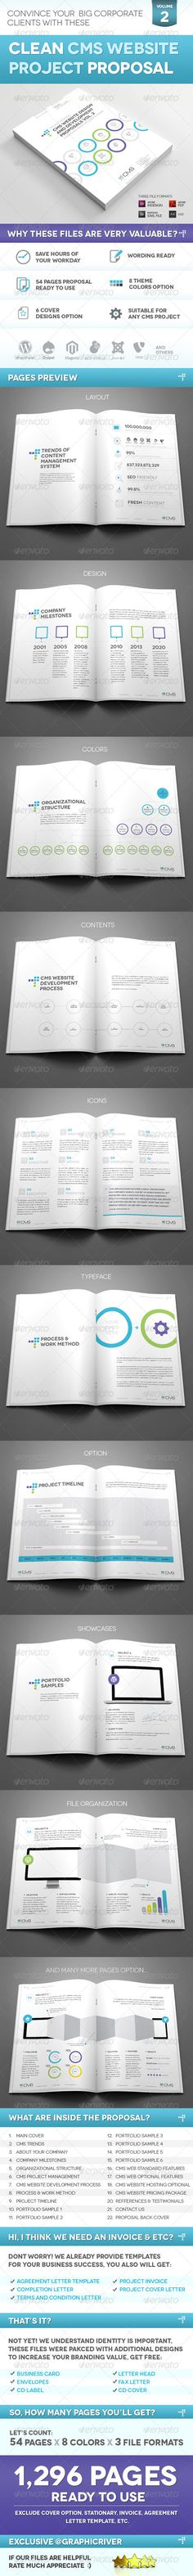 Project Proposal Vol2 Project proposal, Proposals and Proposal - project proposal word template